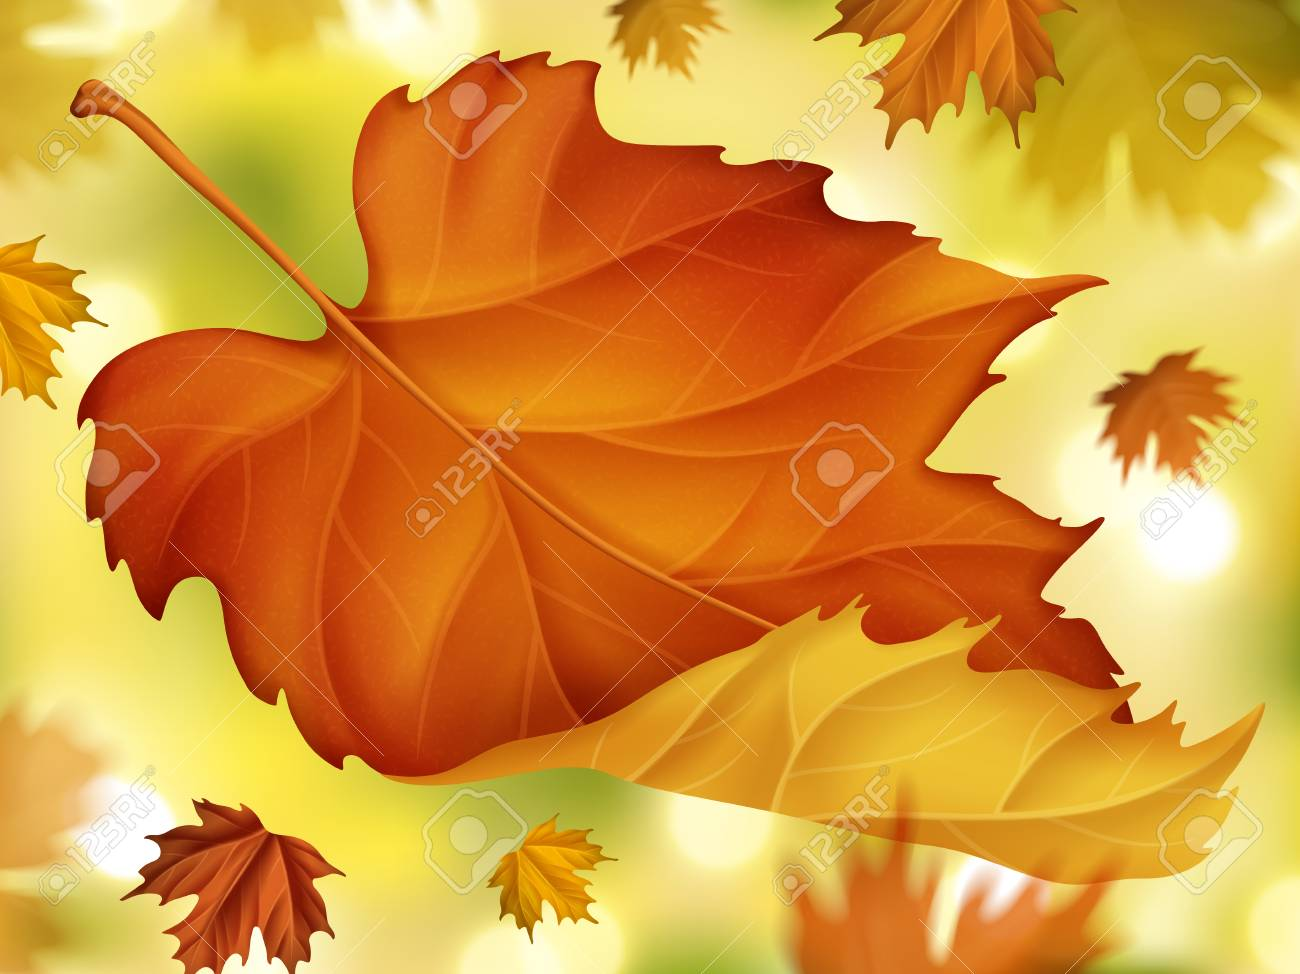 Elegant Fall Foliage Background Close Up Autumn Maples With Royalty Free Cliparts Vectors And Stock Illustration Image 82270217